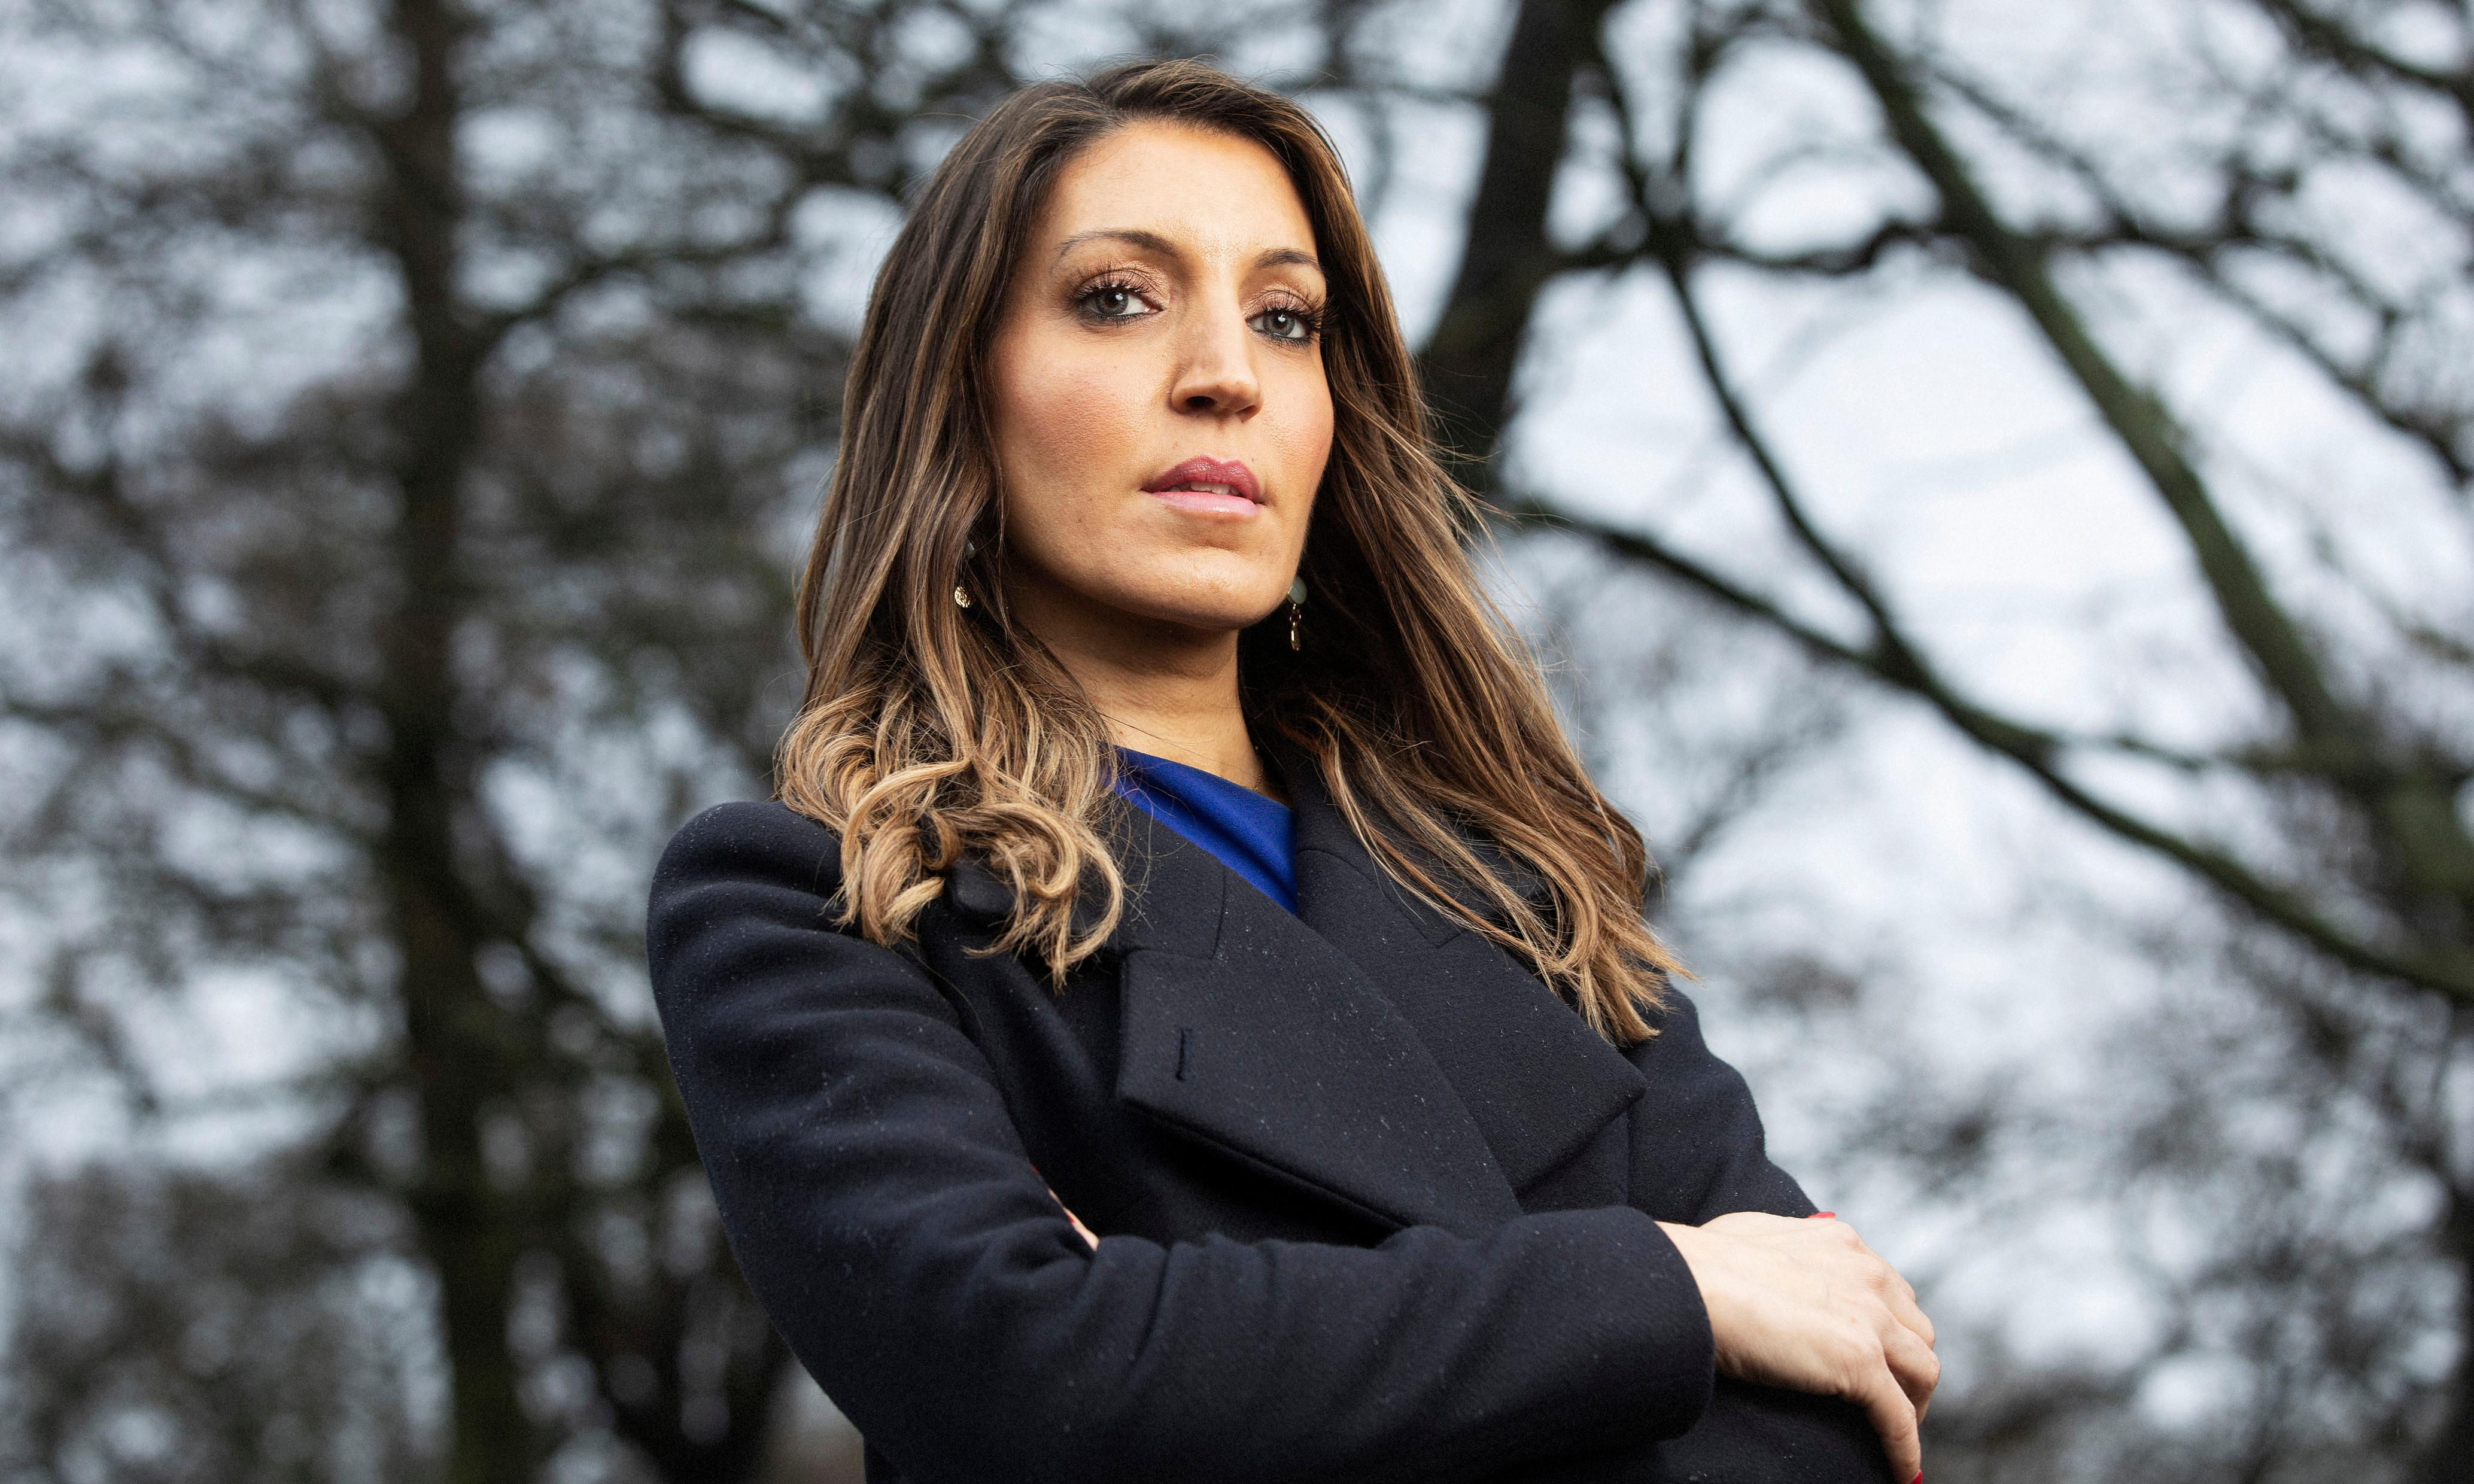 'I called out Palestinian suffering – and was met by antisemitic abuse'